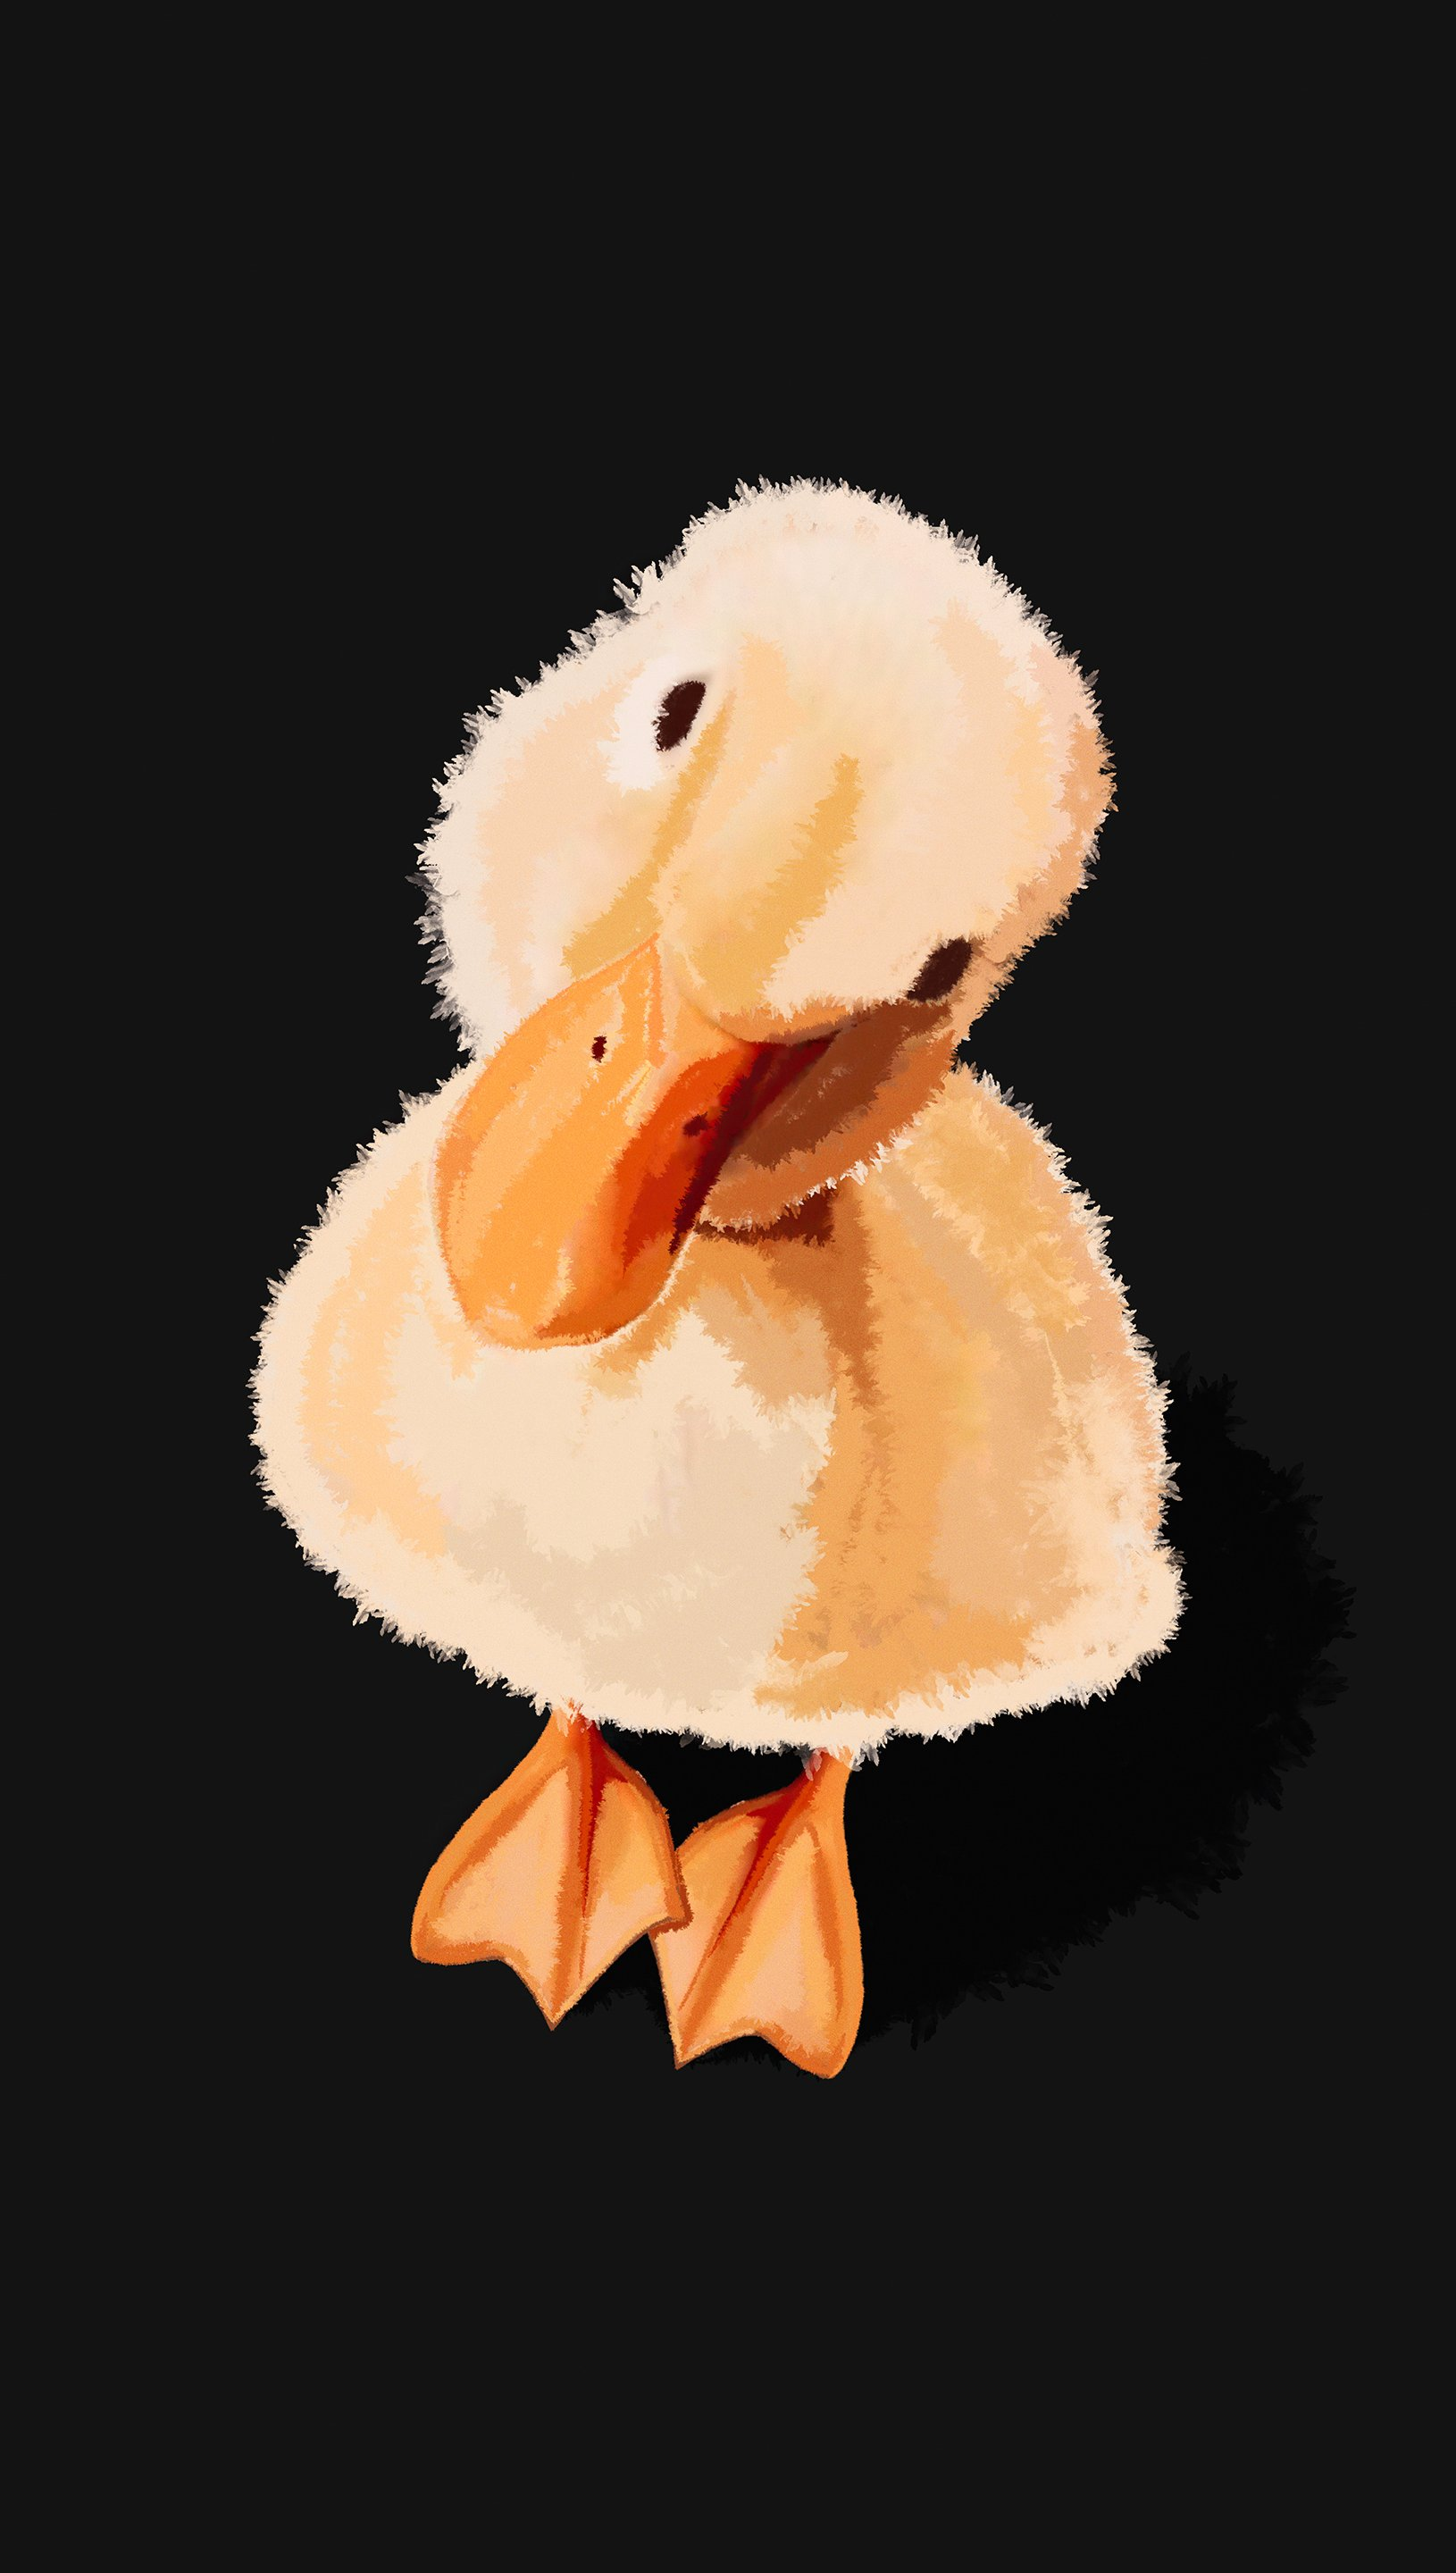 Wallpaper Duckling with tilted head Vertical